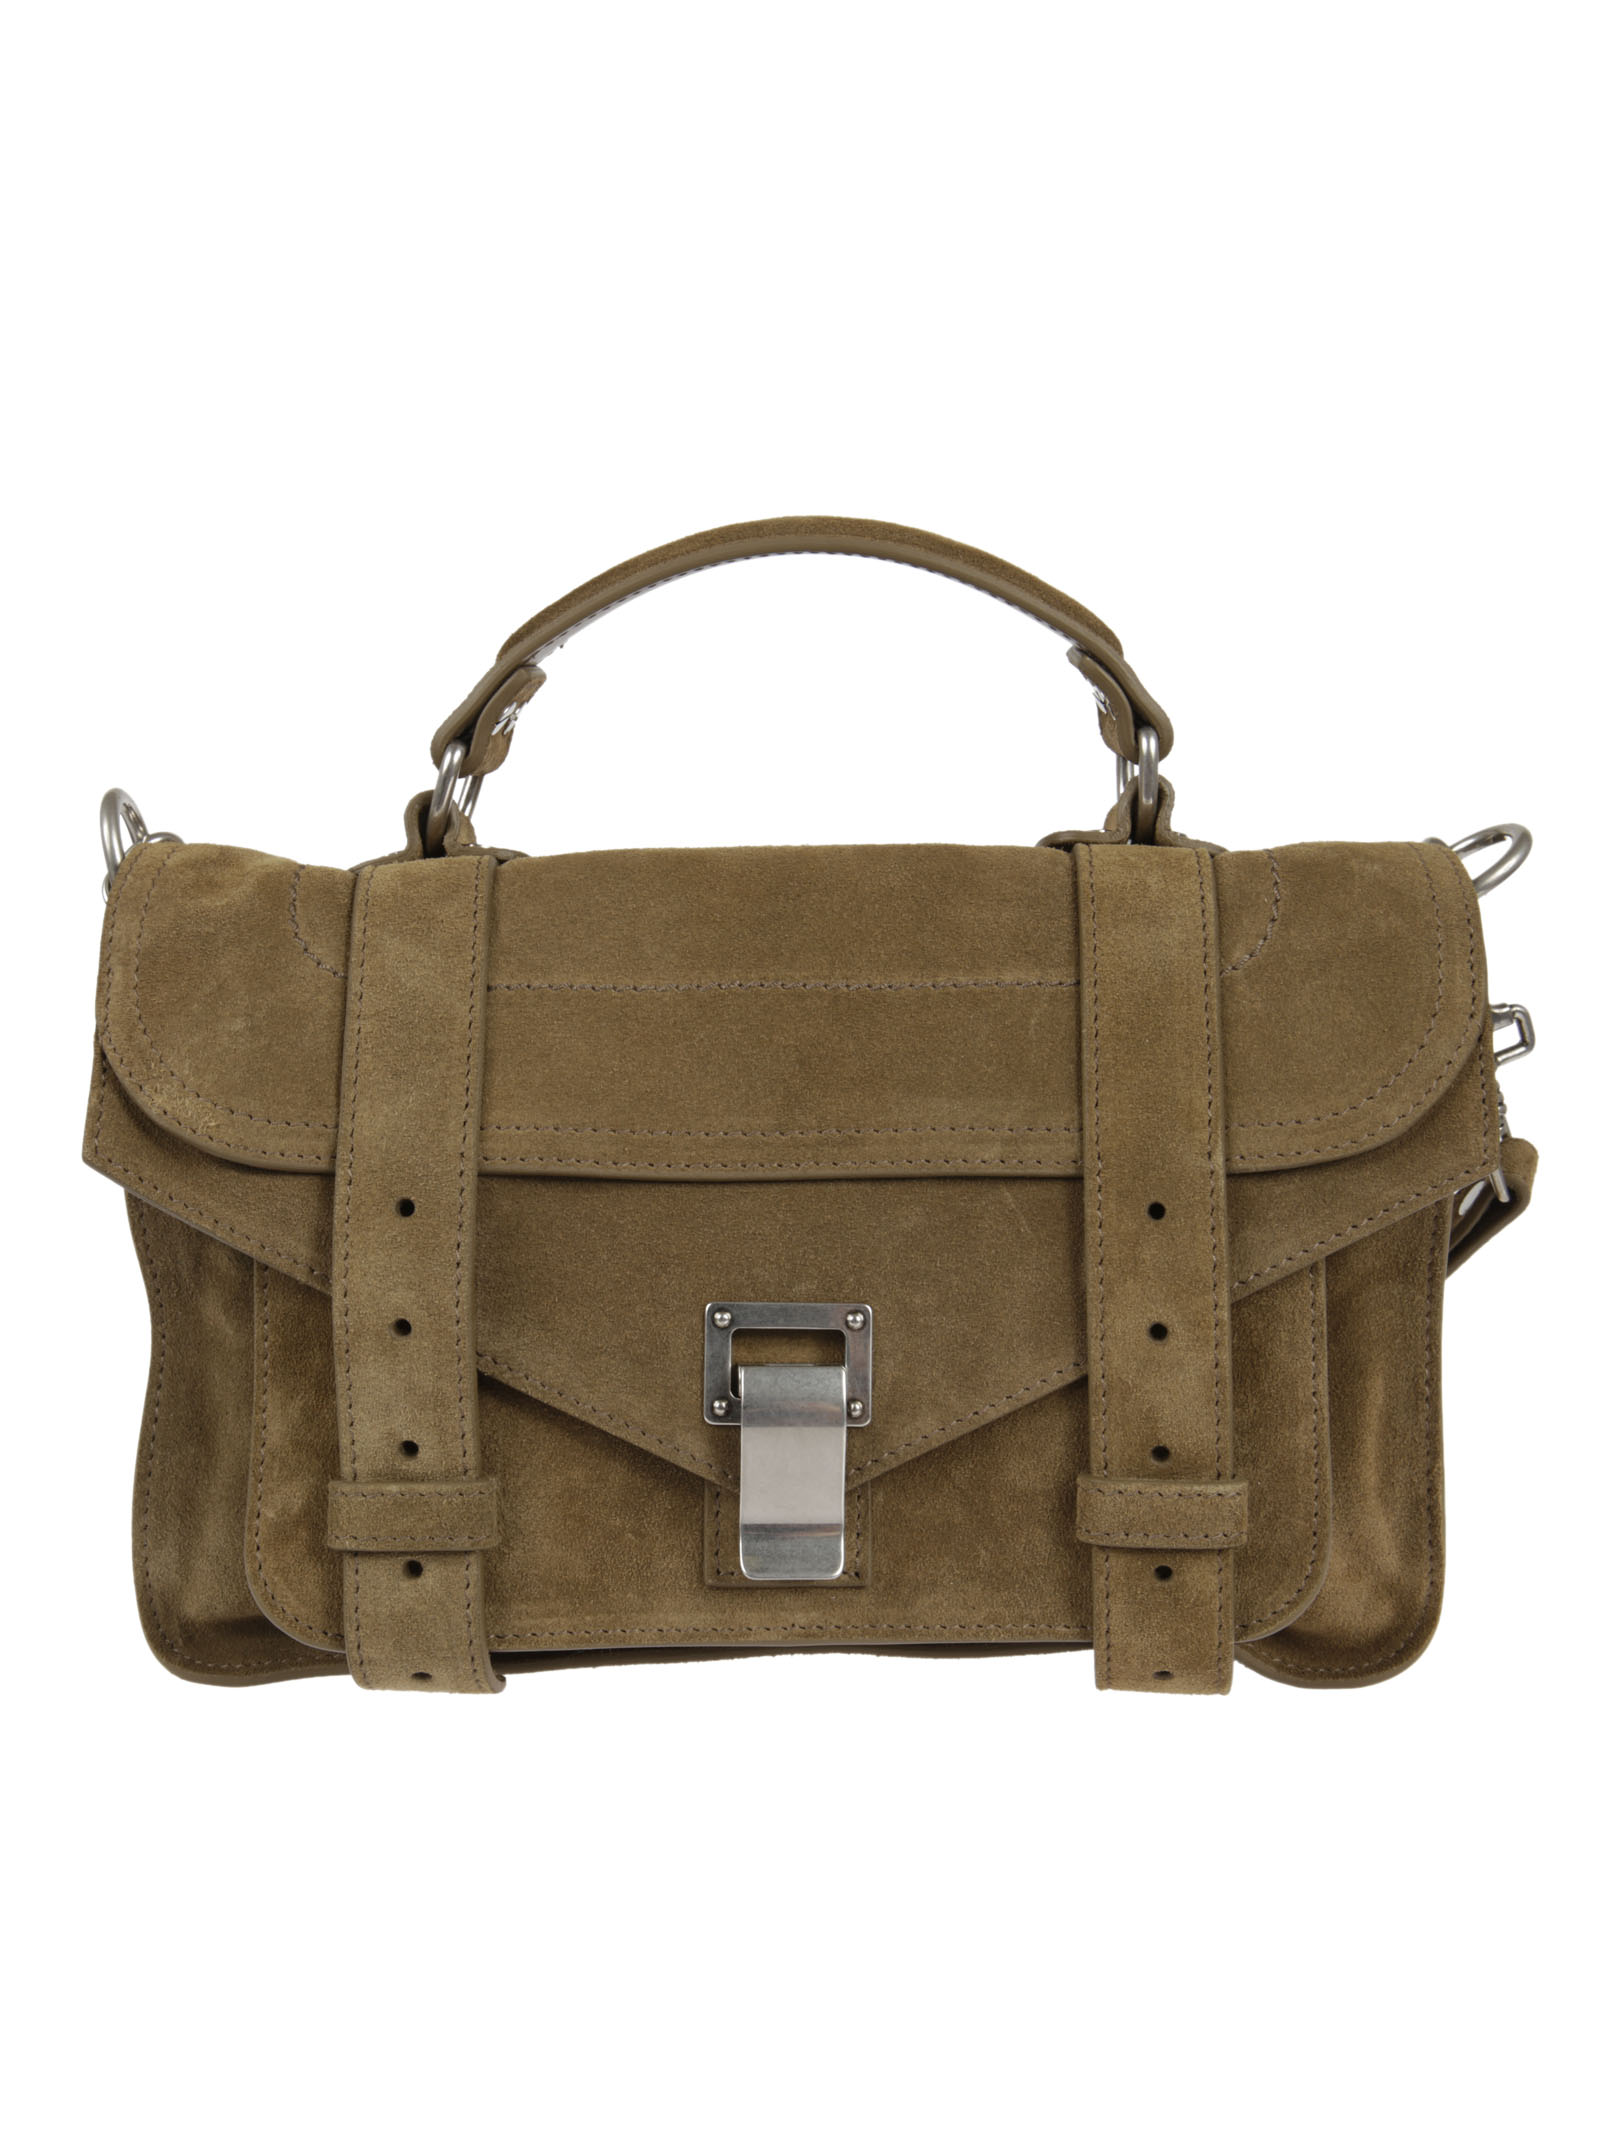 Proenza Schouler PS1 TINY SUEDE